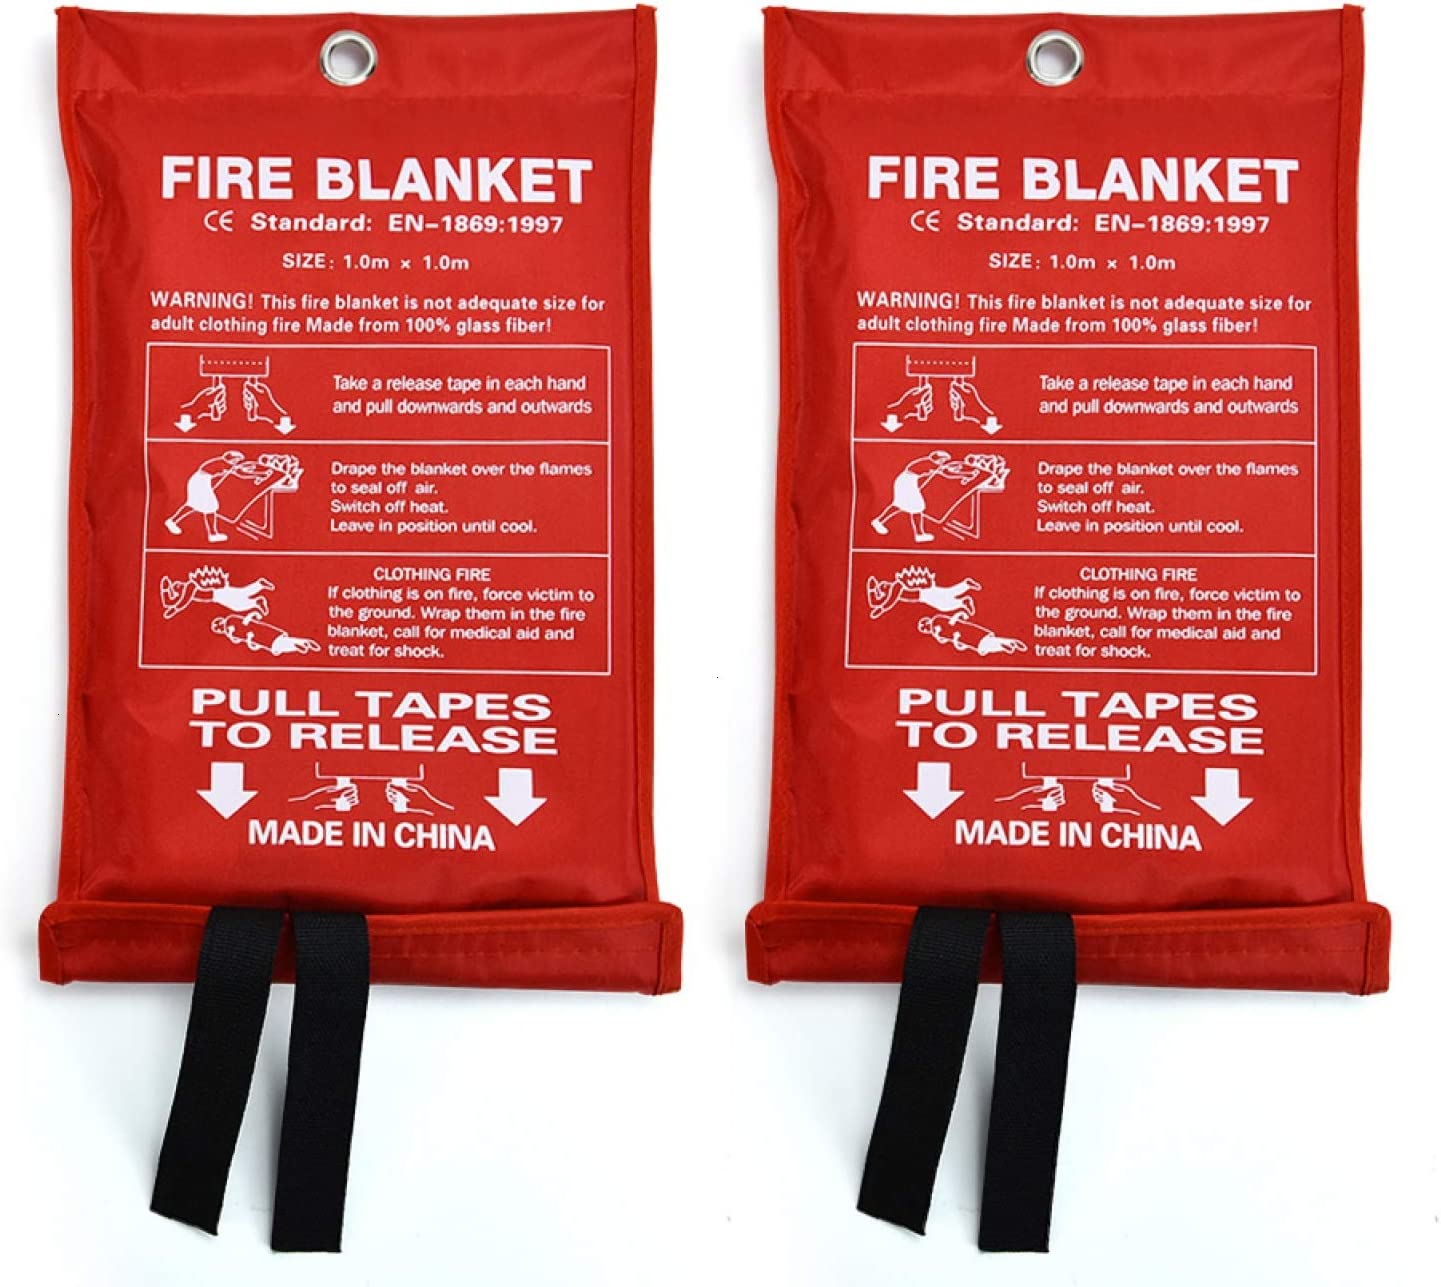 Office Warehouse 39.4 x 39.4 in Car AQUEENLY Fiberglass Fire Emergency Blanket Fire Shelter Safety Cover for Kitchen 2Pack Fire Blanket for Emergency Survival Camping Grilling